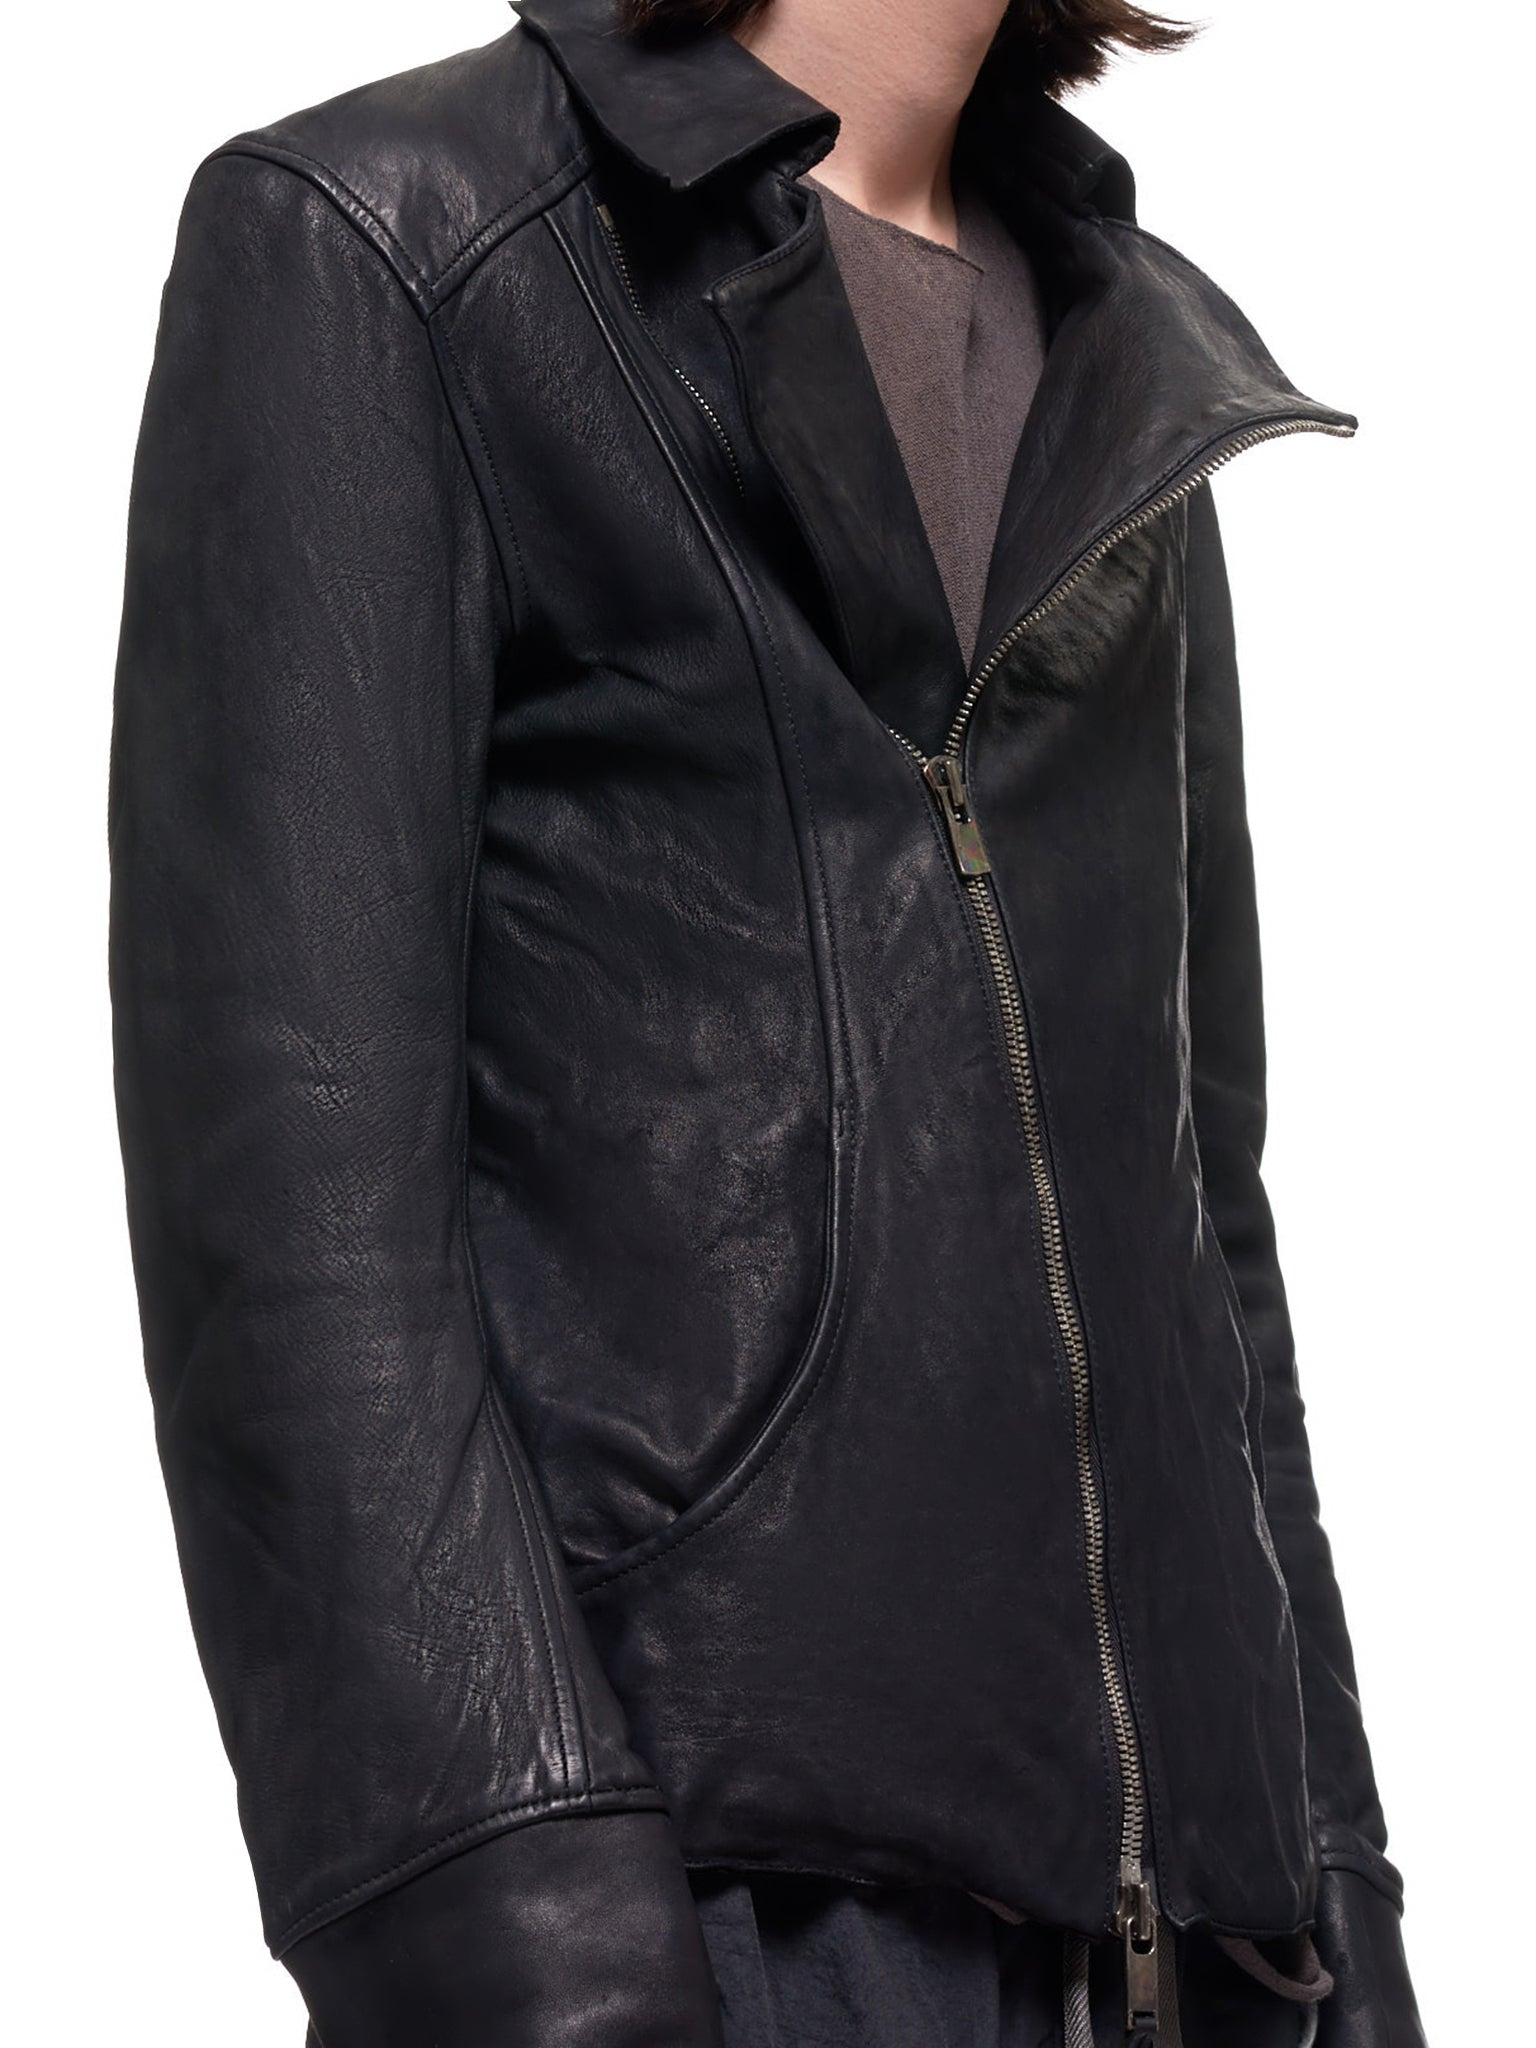 CHM Soft Horse Leather Jacket (CHM-SOFT-HORSE-FG-BLACK)